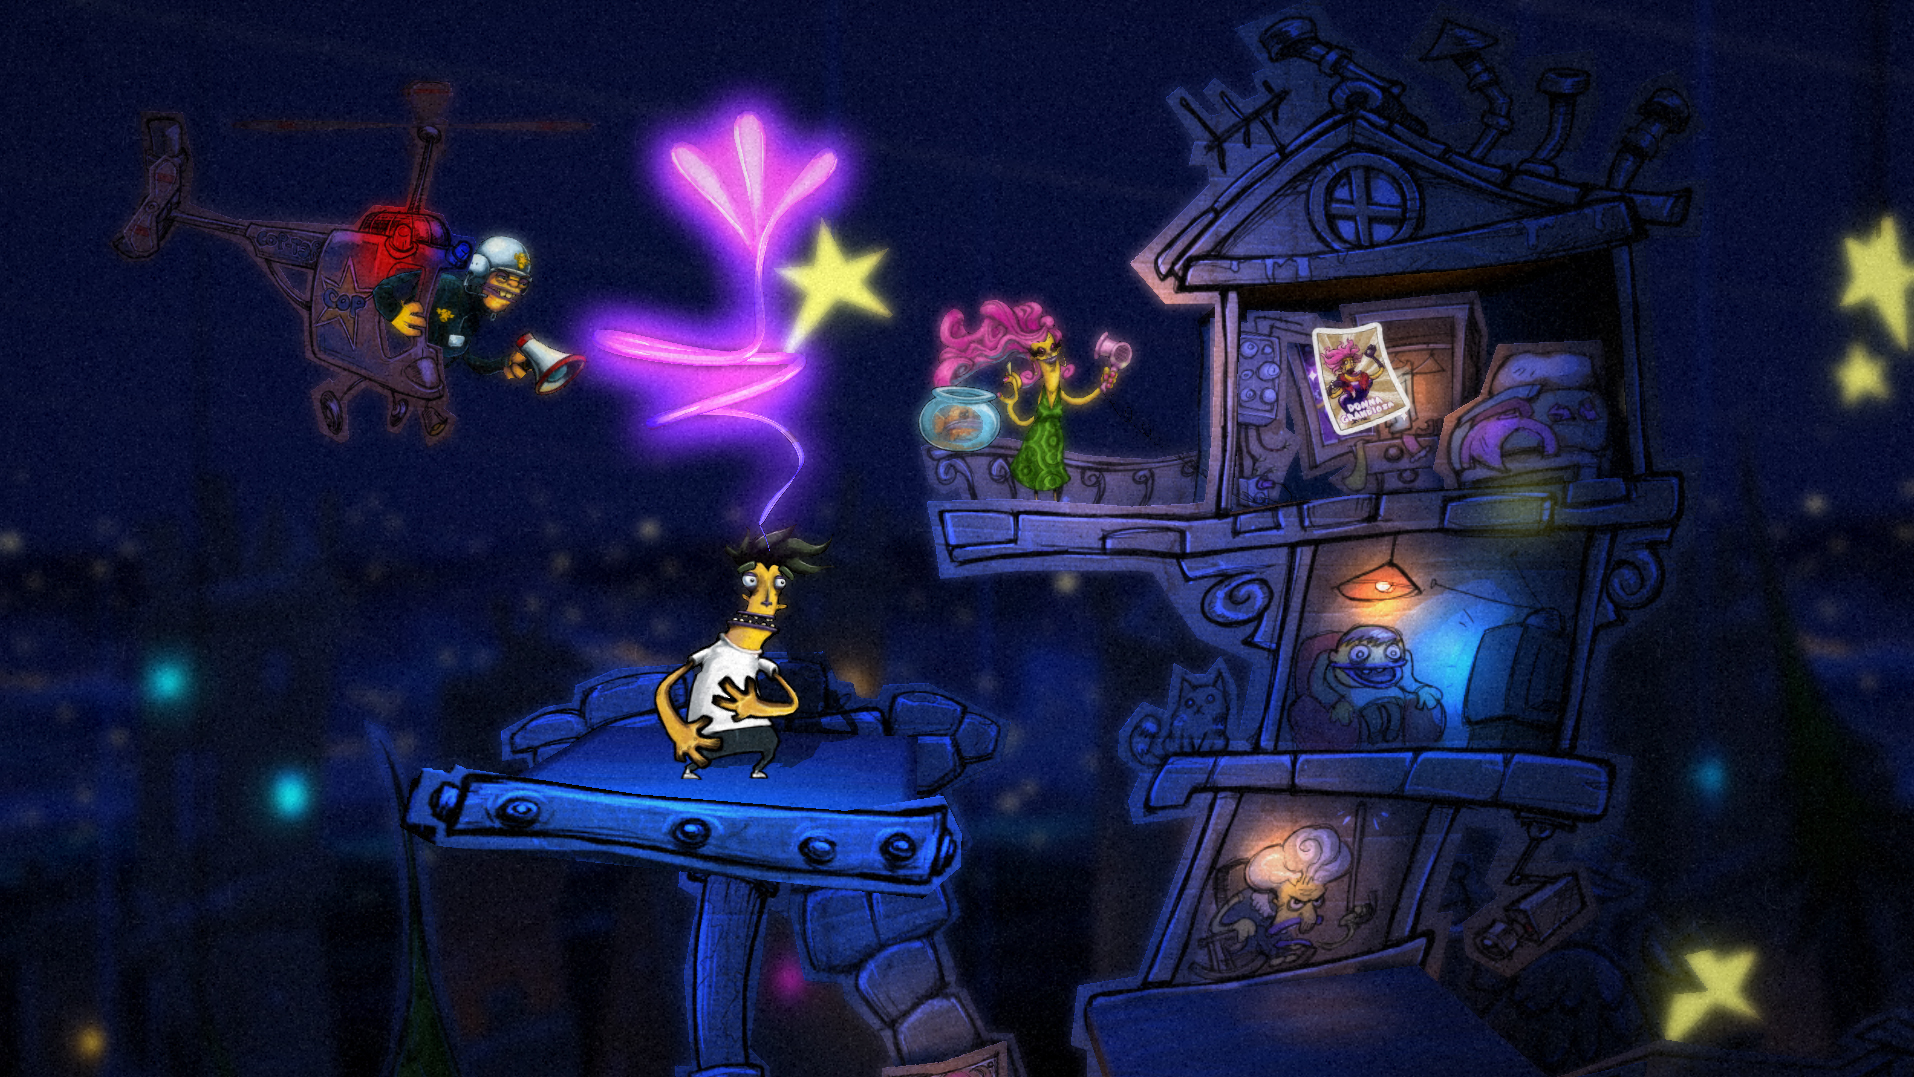 Pre-order quirky Psychonauts-like puzzler Stick It to The Man! for Vita to get a discount